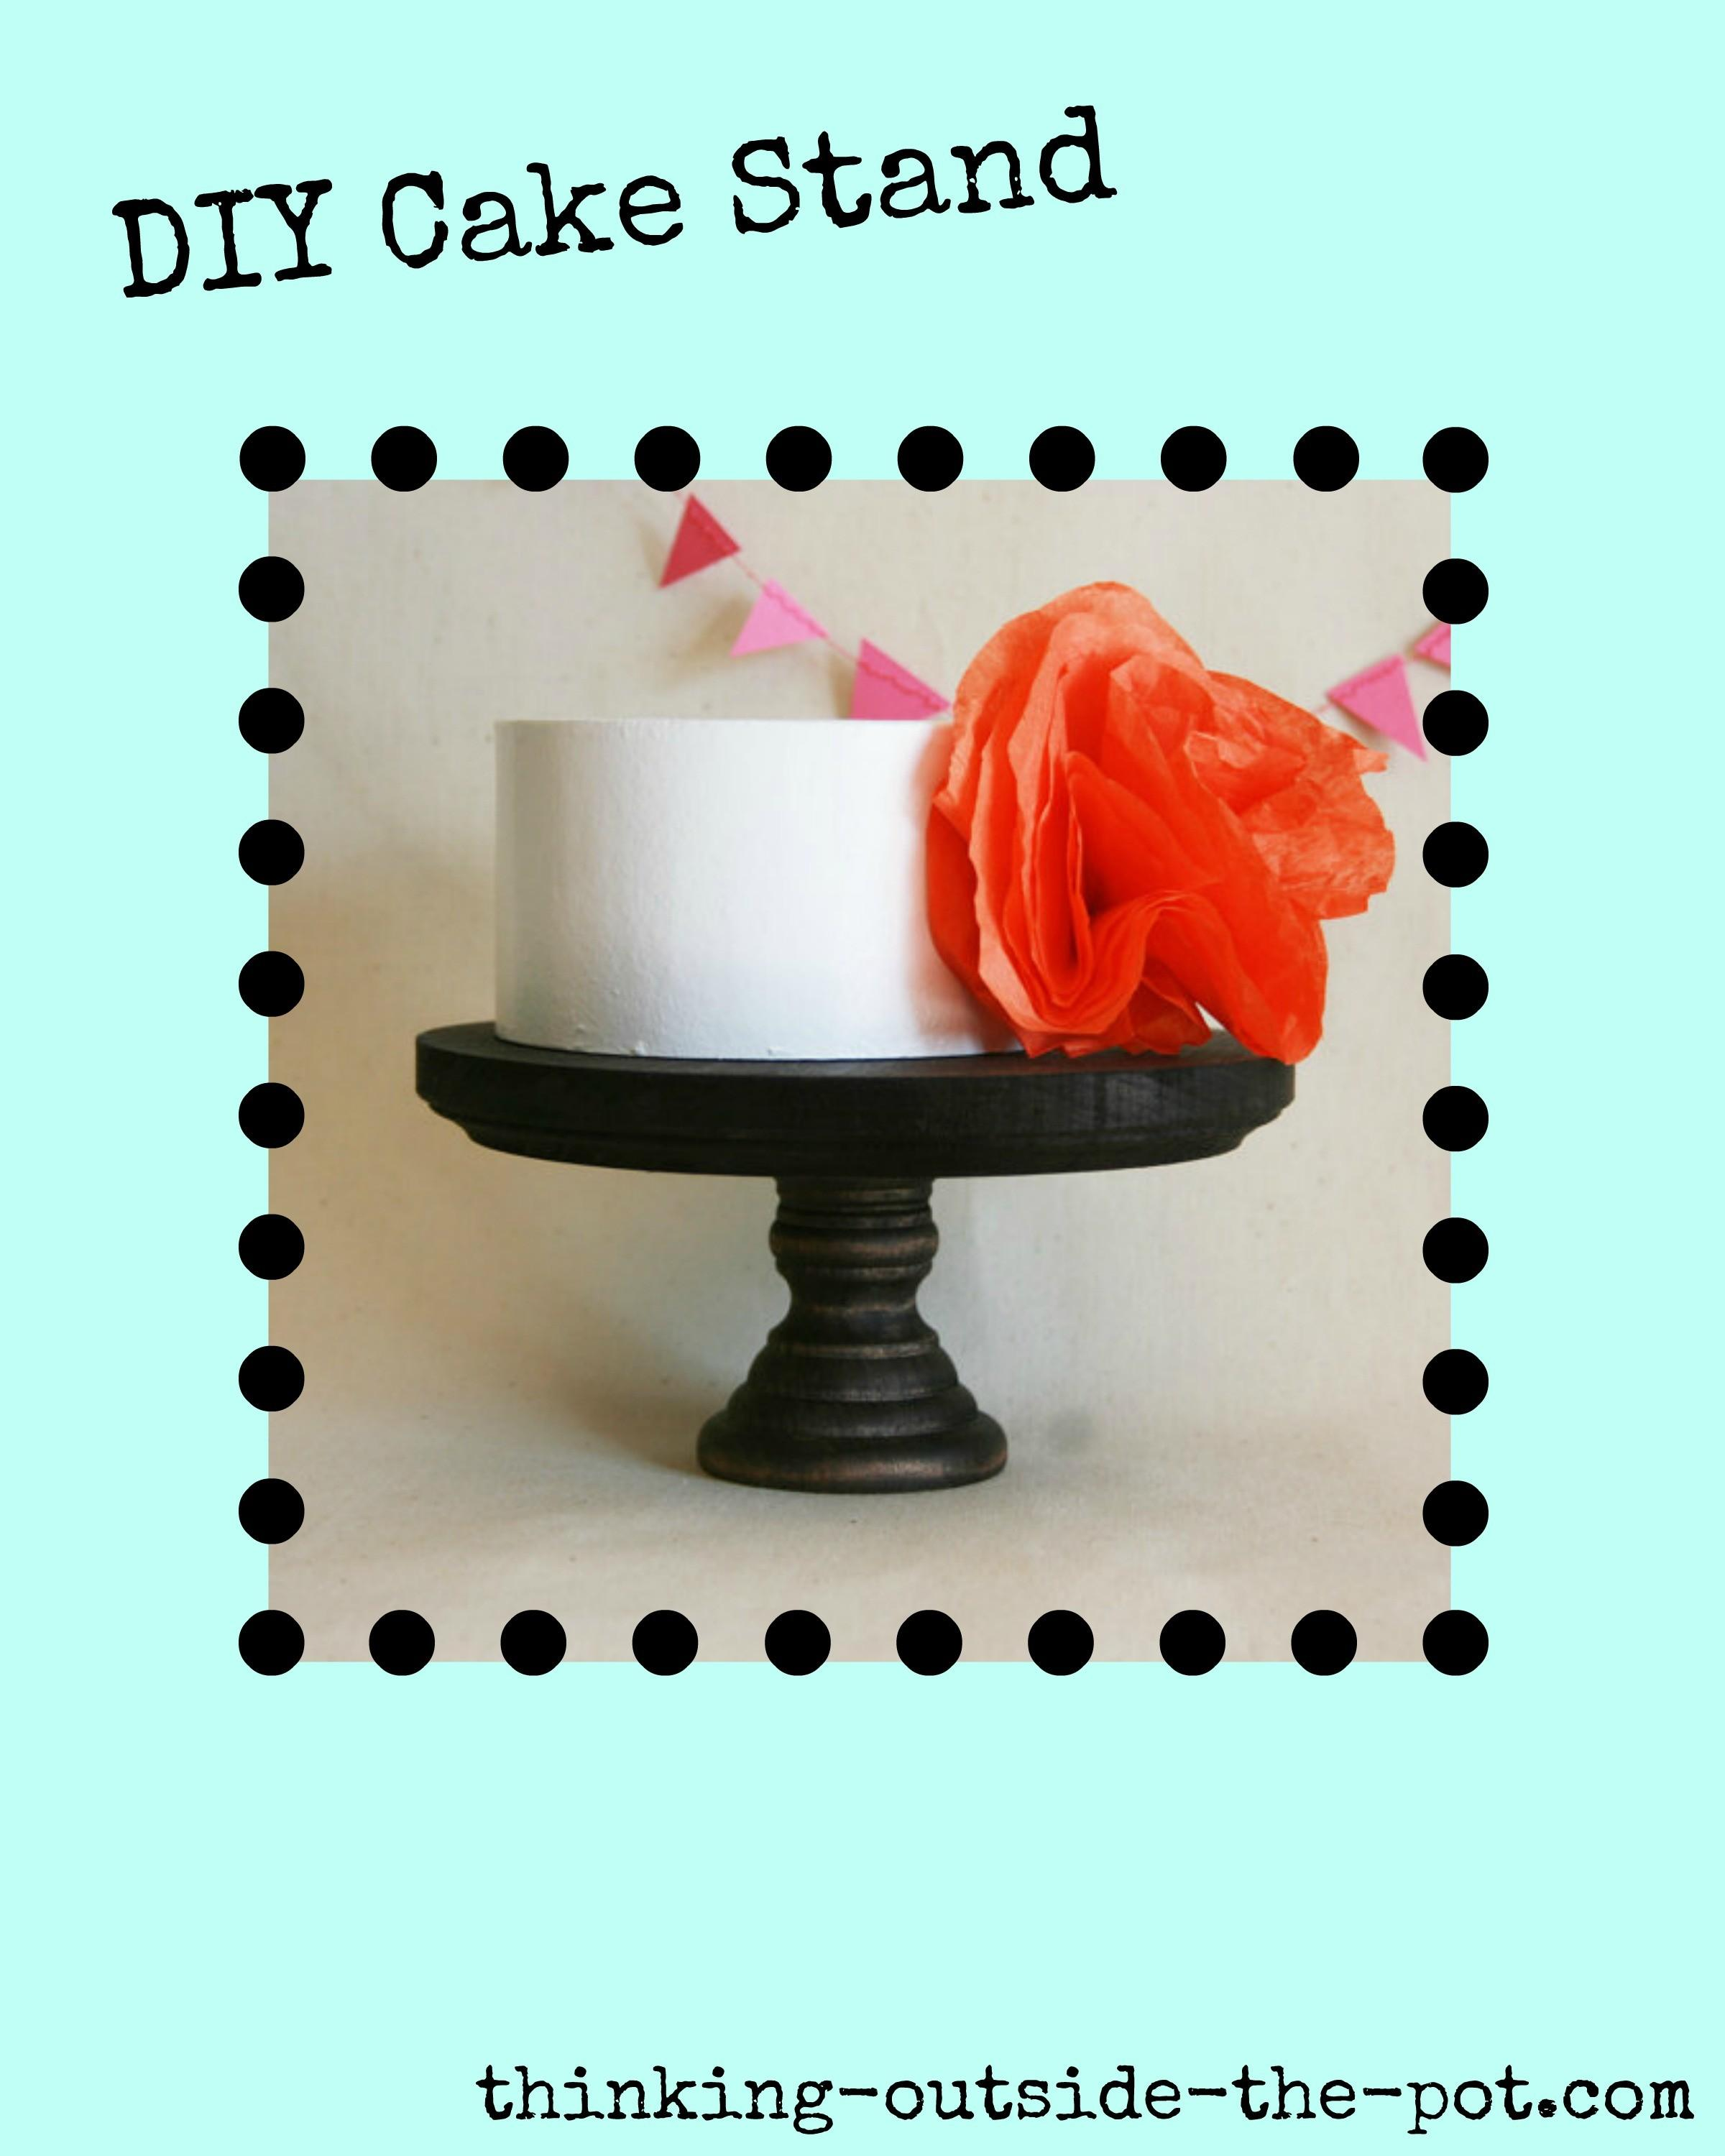 Diy Cake Stand Thinking Outside Pot